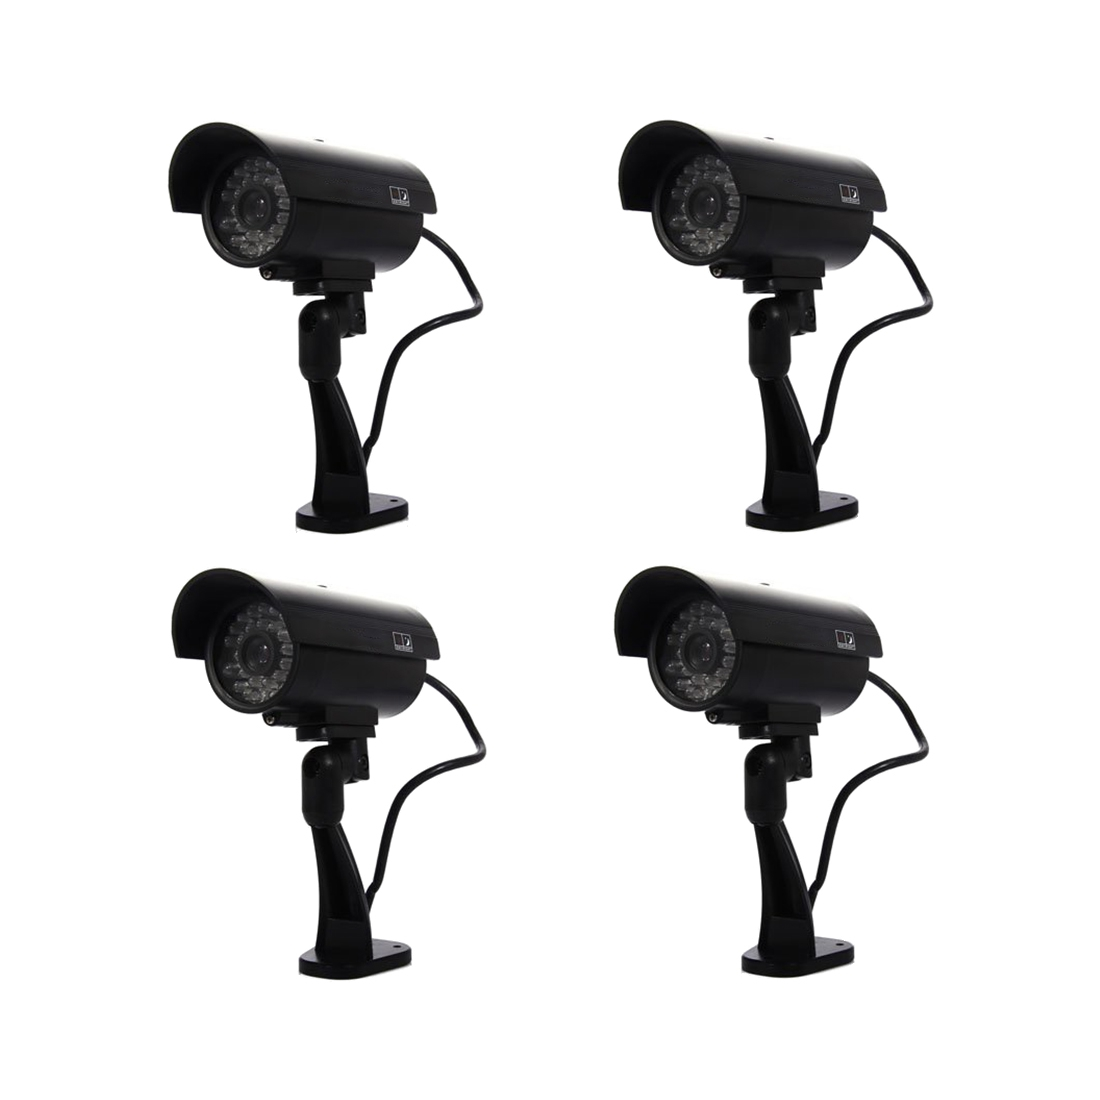 Security Surveillance fake Dummy IR LED cameras - Night/Day Vision Look Bullet CCD CCTV Imitation Dummy Camera Black 1 3 ccd waterproof surveillance security camera with 42 led night vision white dc 12v